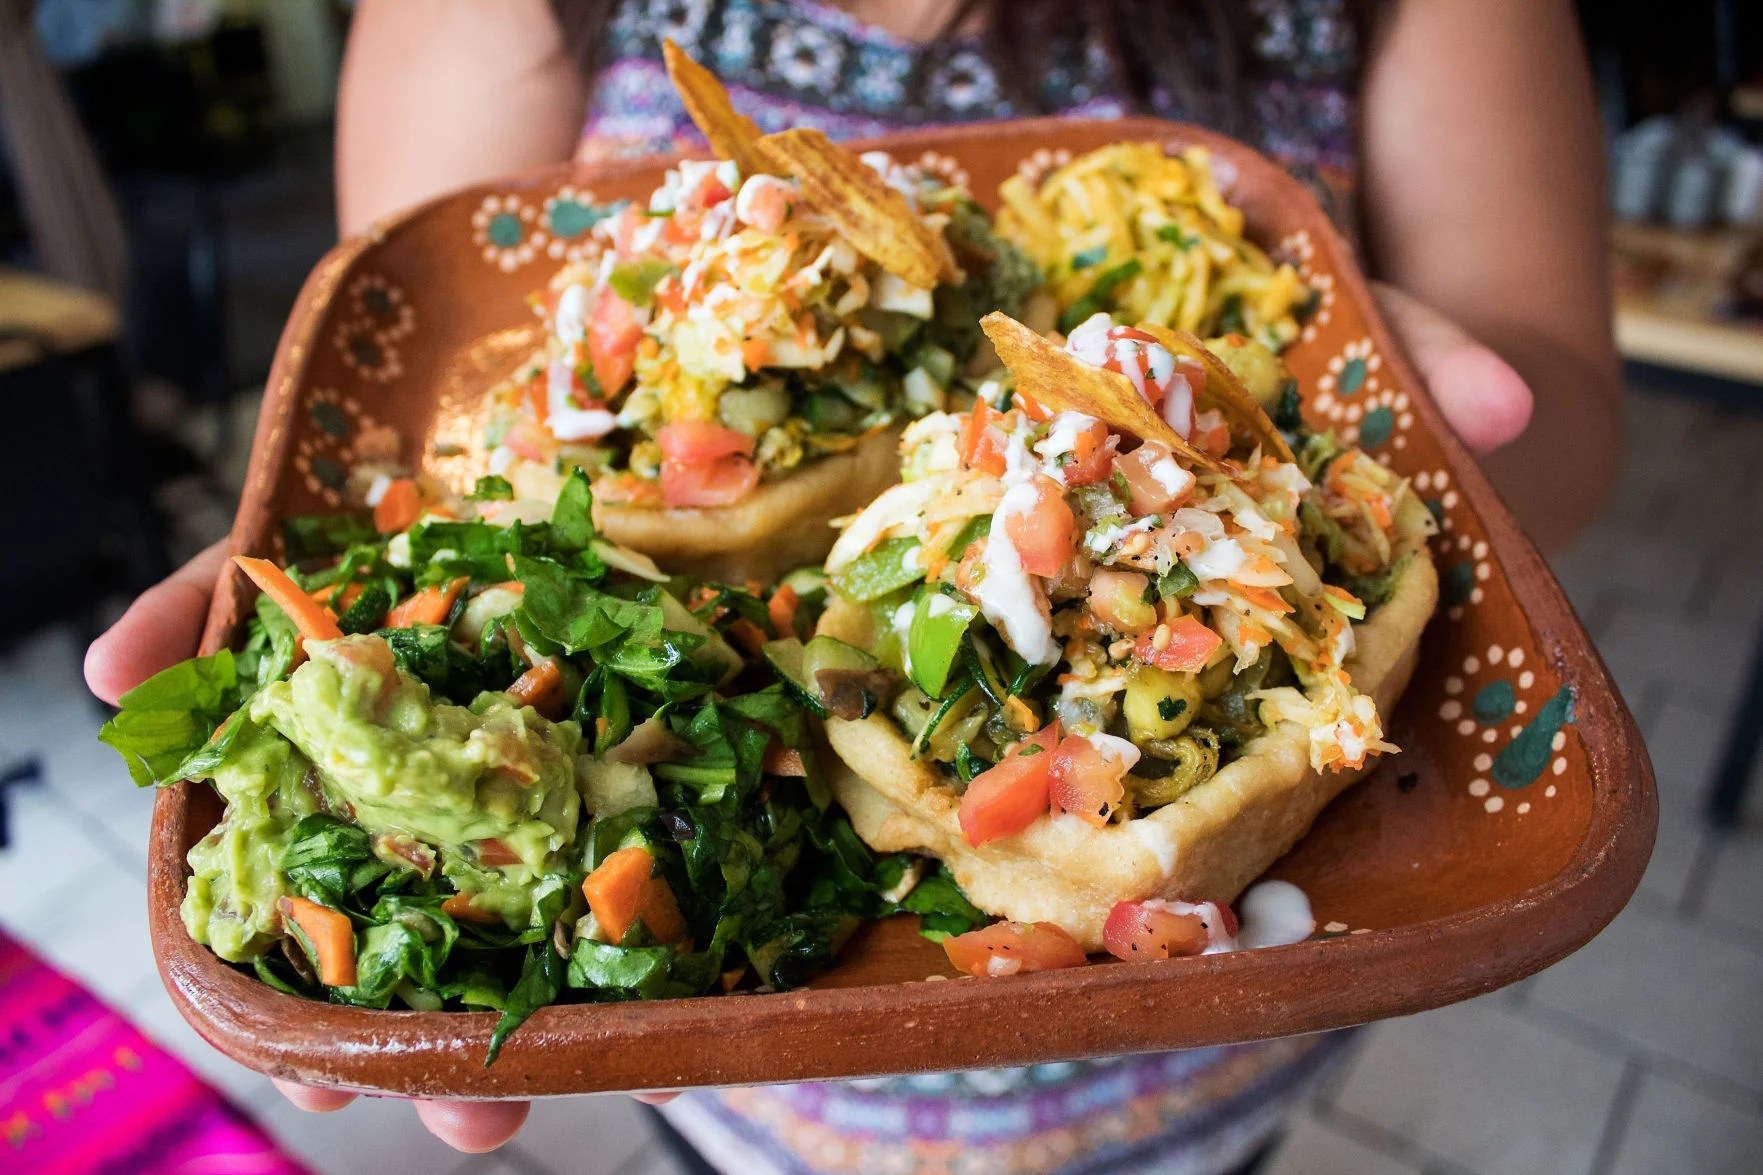 La Cocina Restaurant Menu A Giant List Of Vegan Food In Tucson Now With More Restaurants